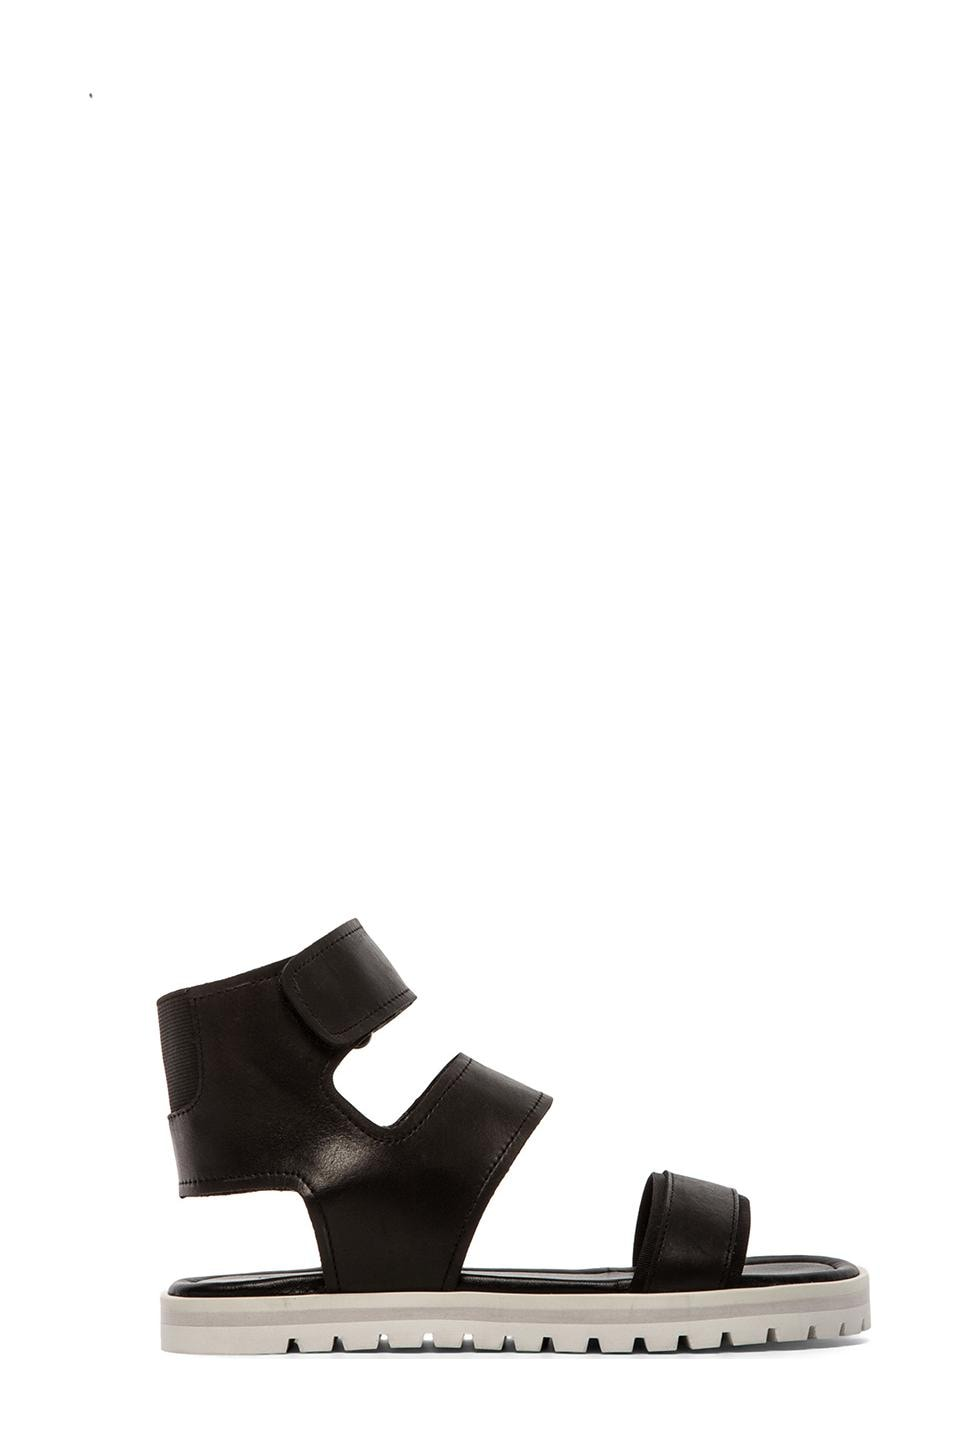 Kelsi Dagger Supreme Sandal in Black